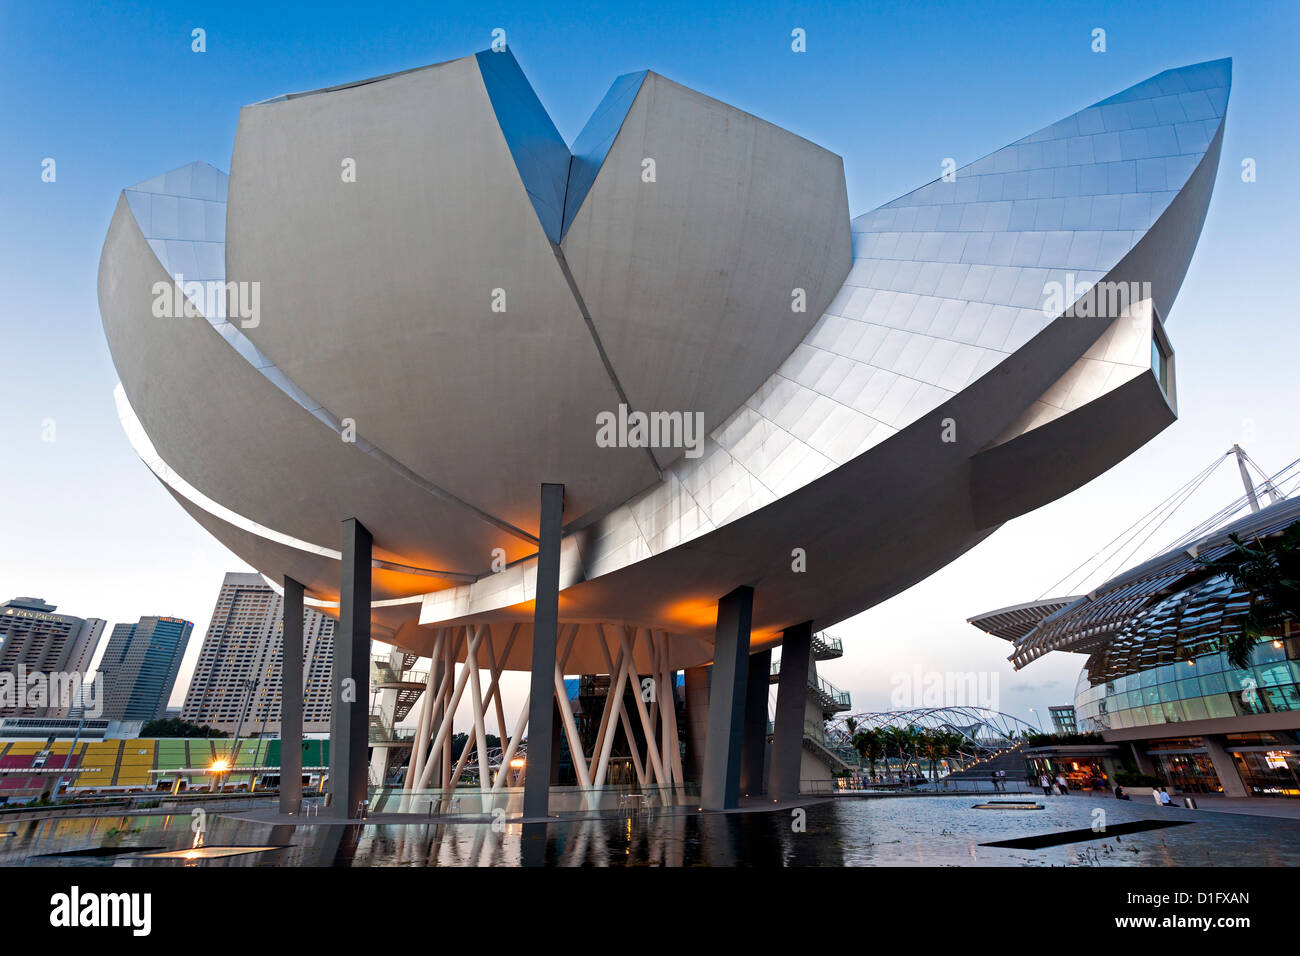 Art Science Museum, Marina Bay, Singapore, Southeast Asia, Asia - Stock Image